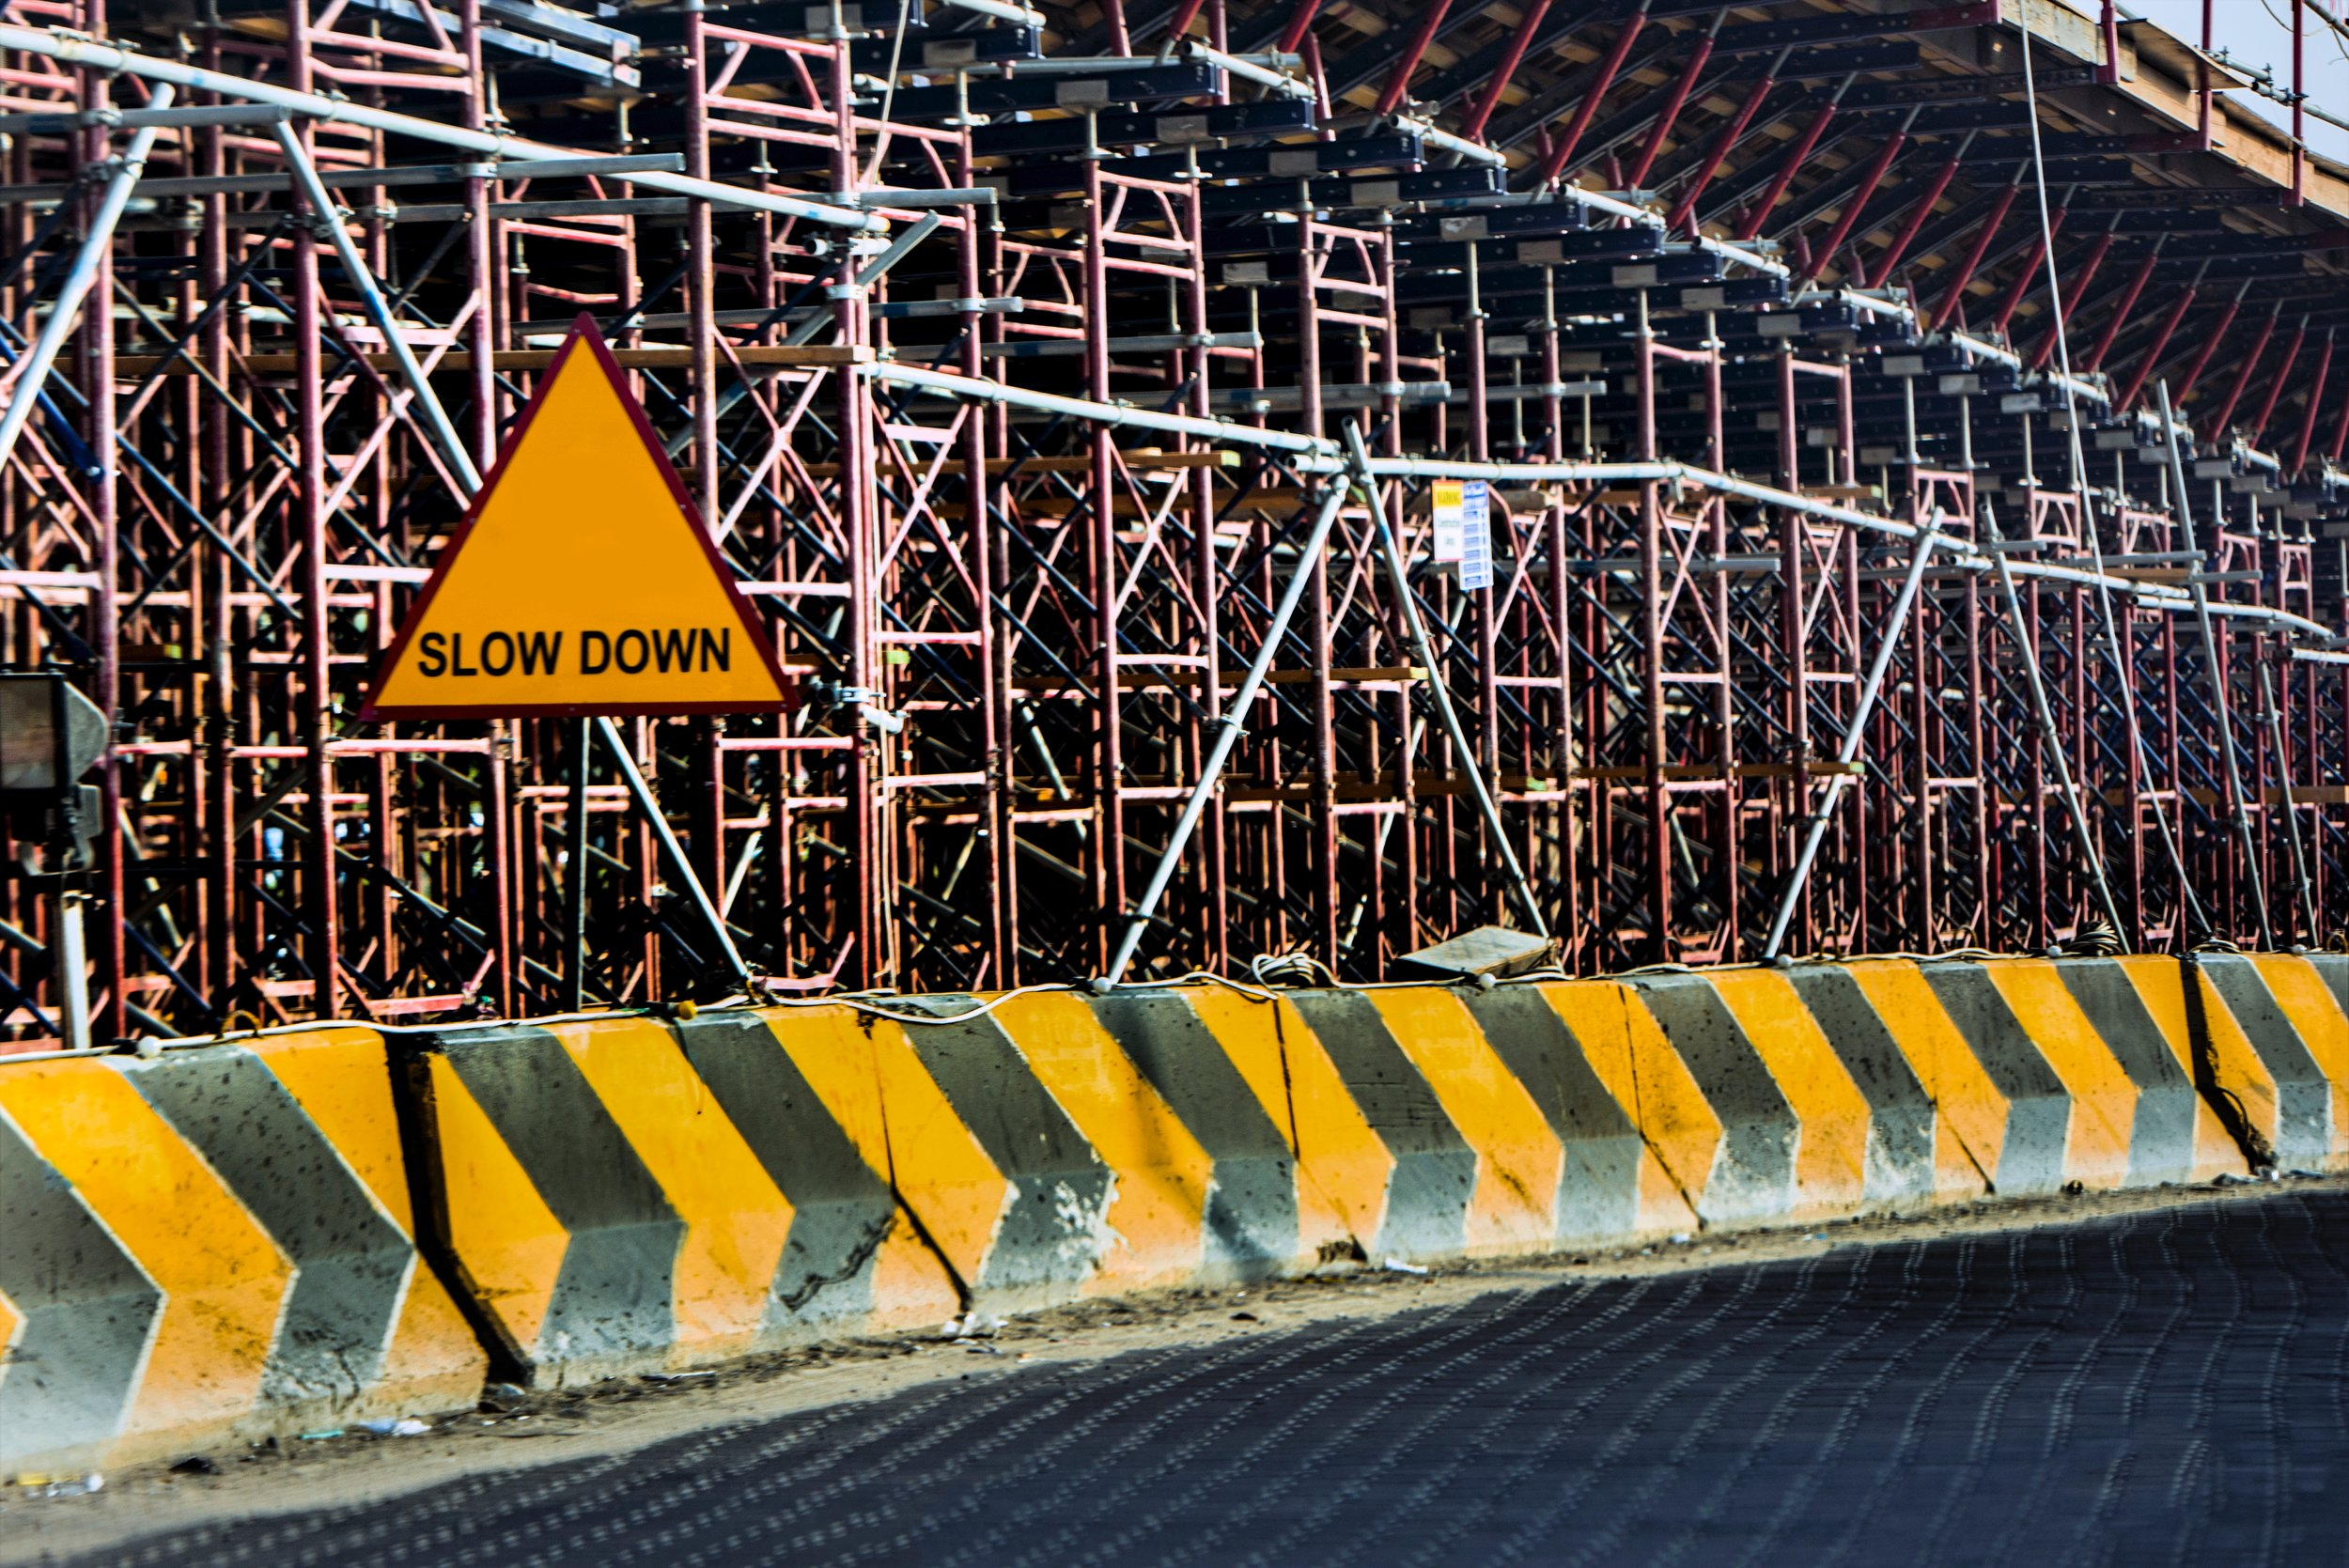 barriers-building-caution-638487.jpg